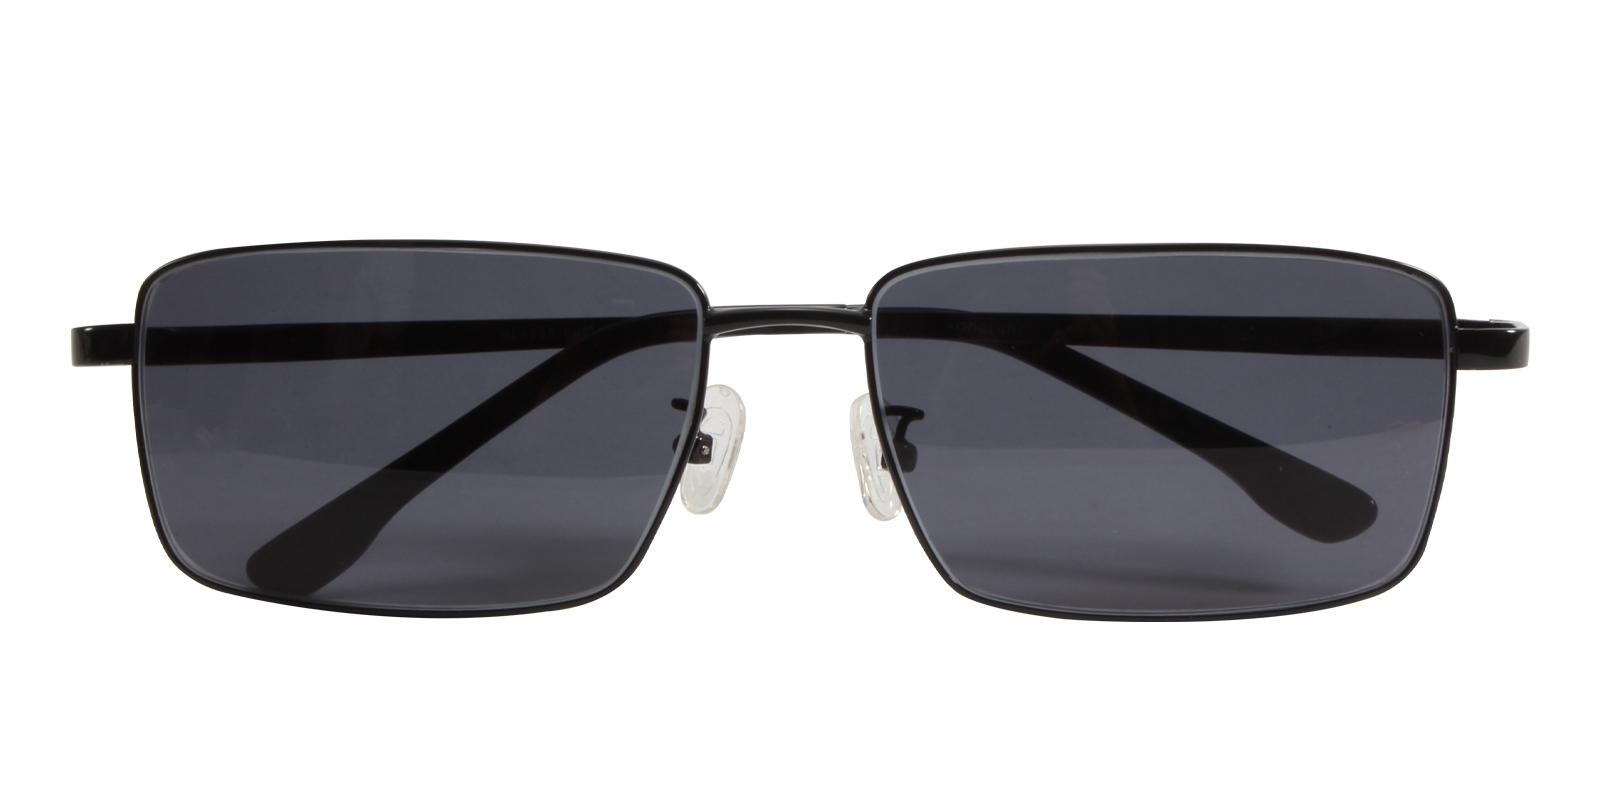 Sea Black Metal NosePads , SpringHinges , Sunglasses Frames from ABBE Glasses